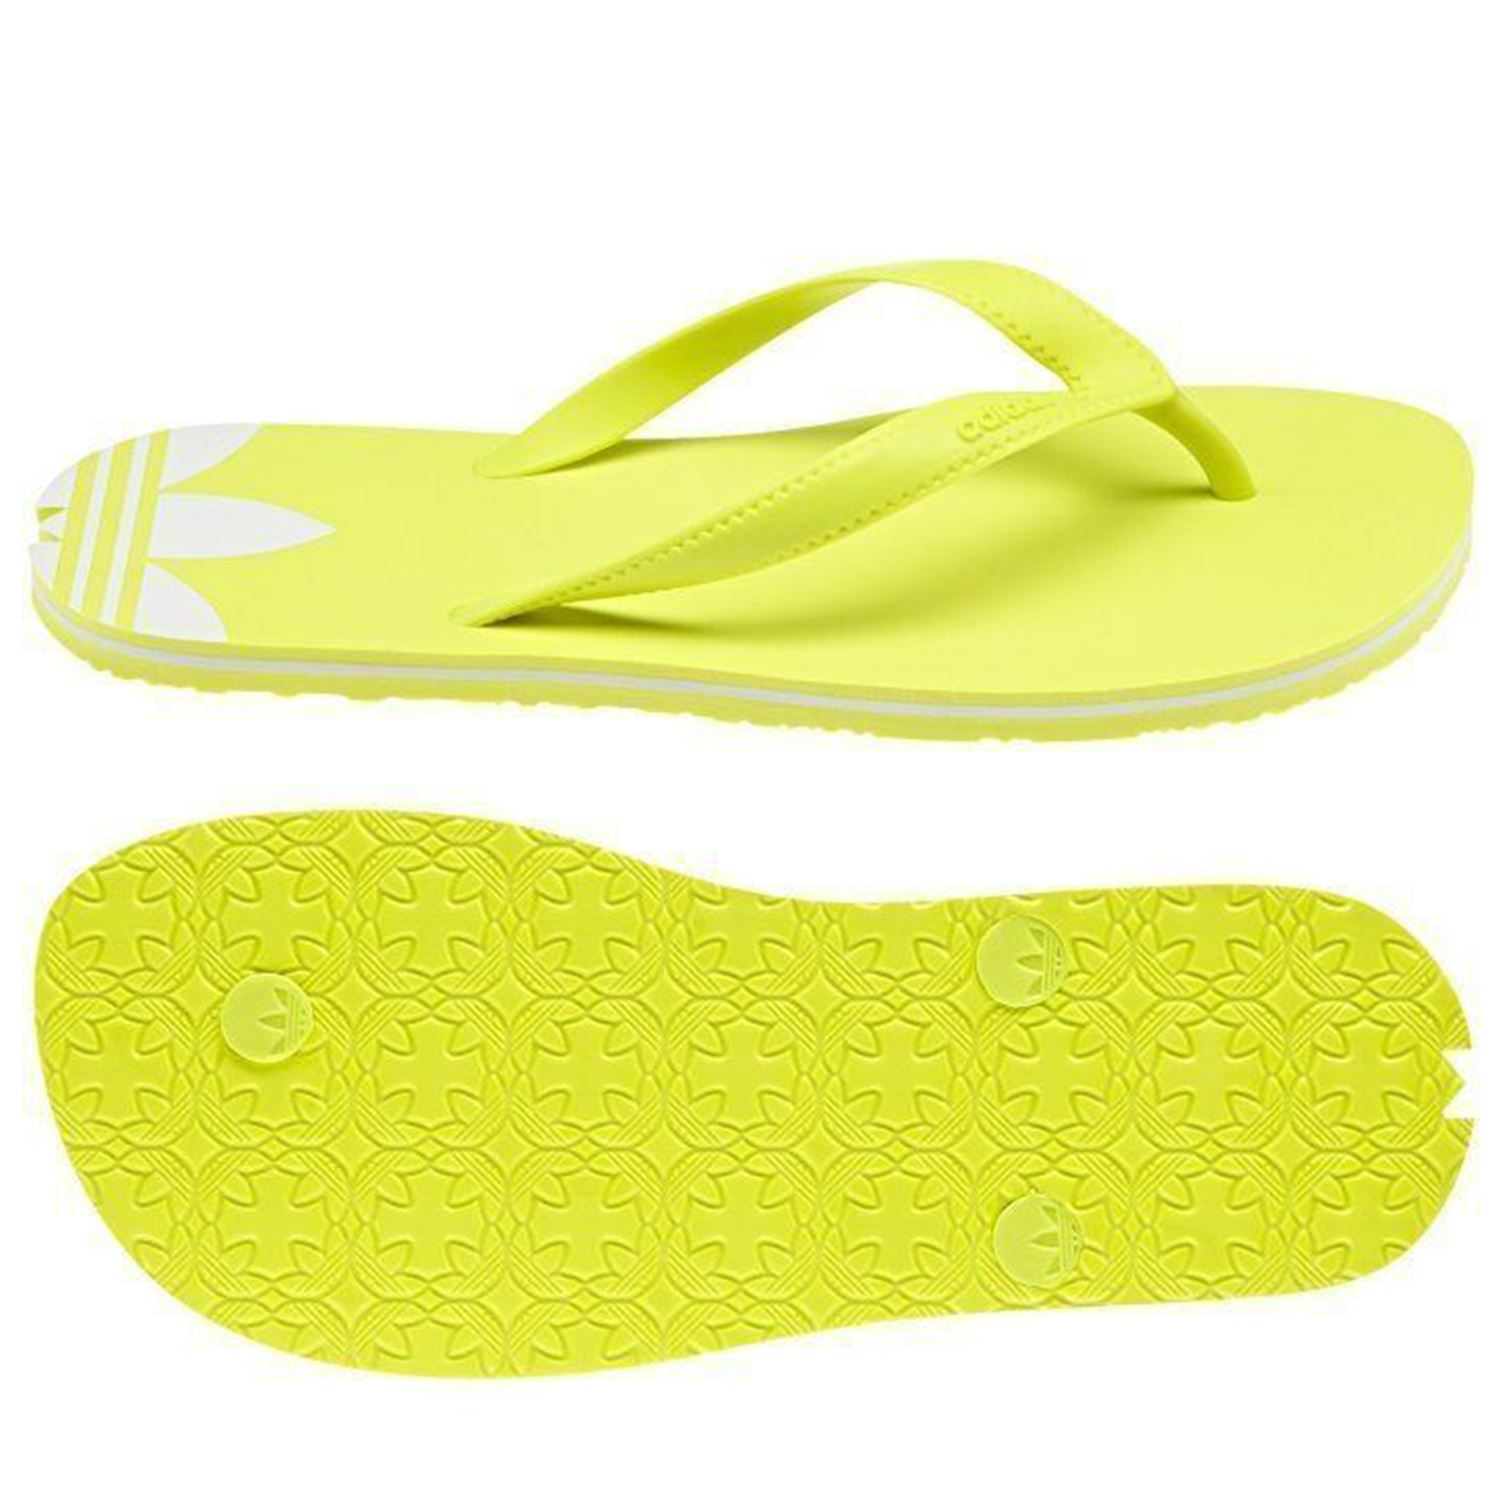 477b969dfe36 adidas Ladies Adisun Sandals Size 5. About this product. Picture 1 of 2   Picture 2 of 2